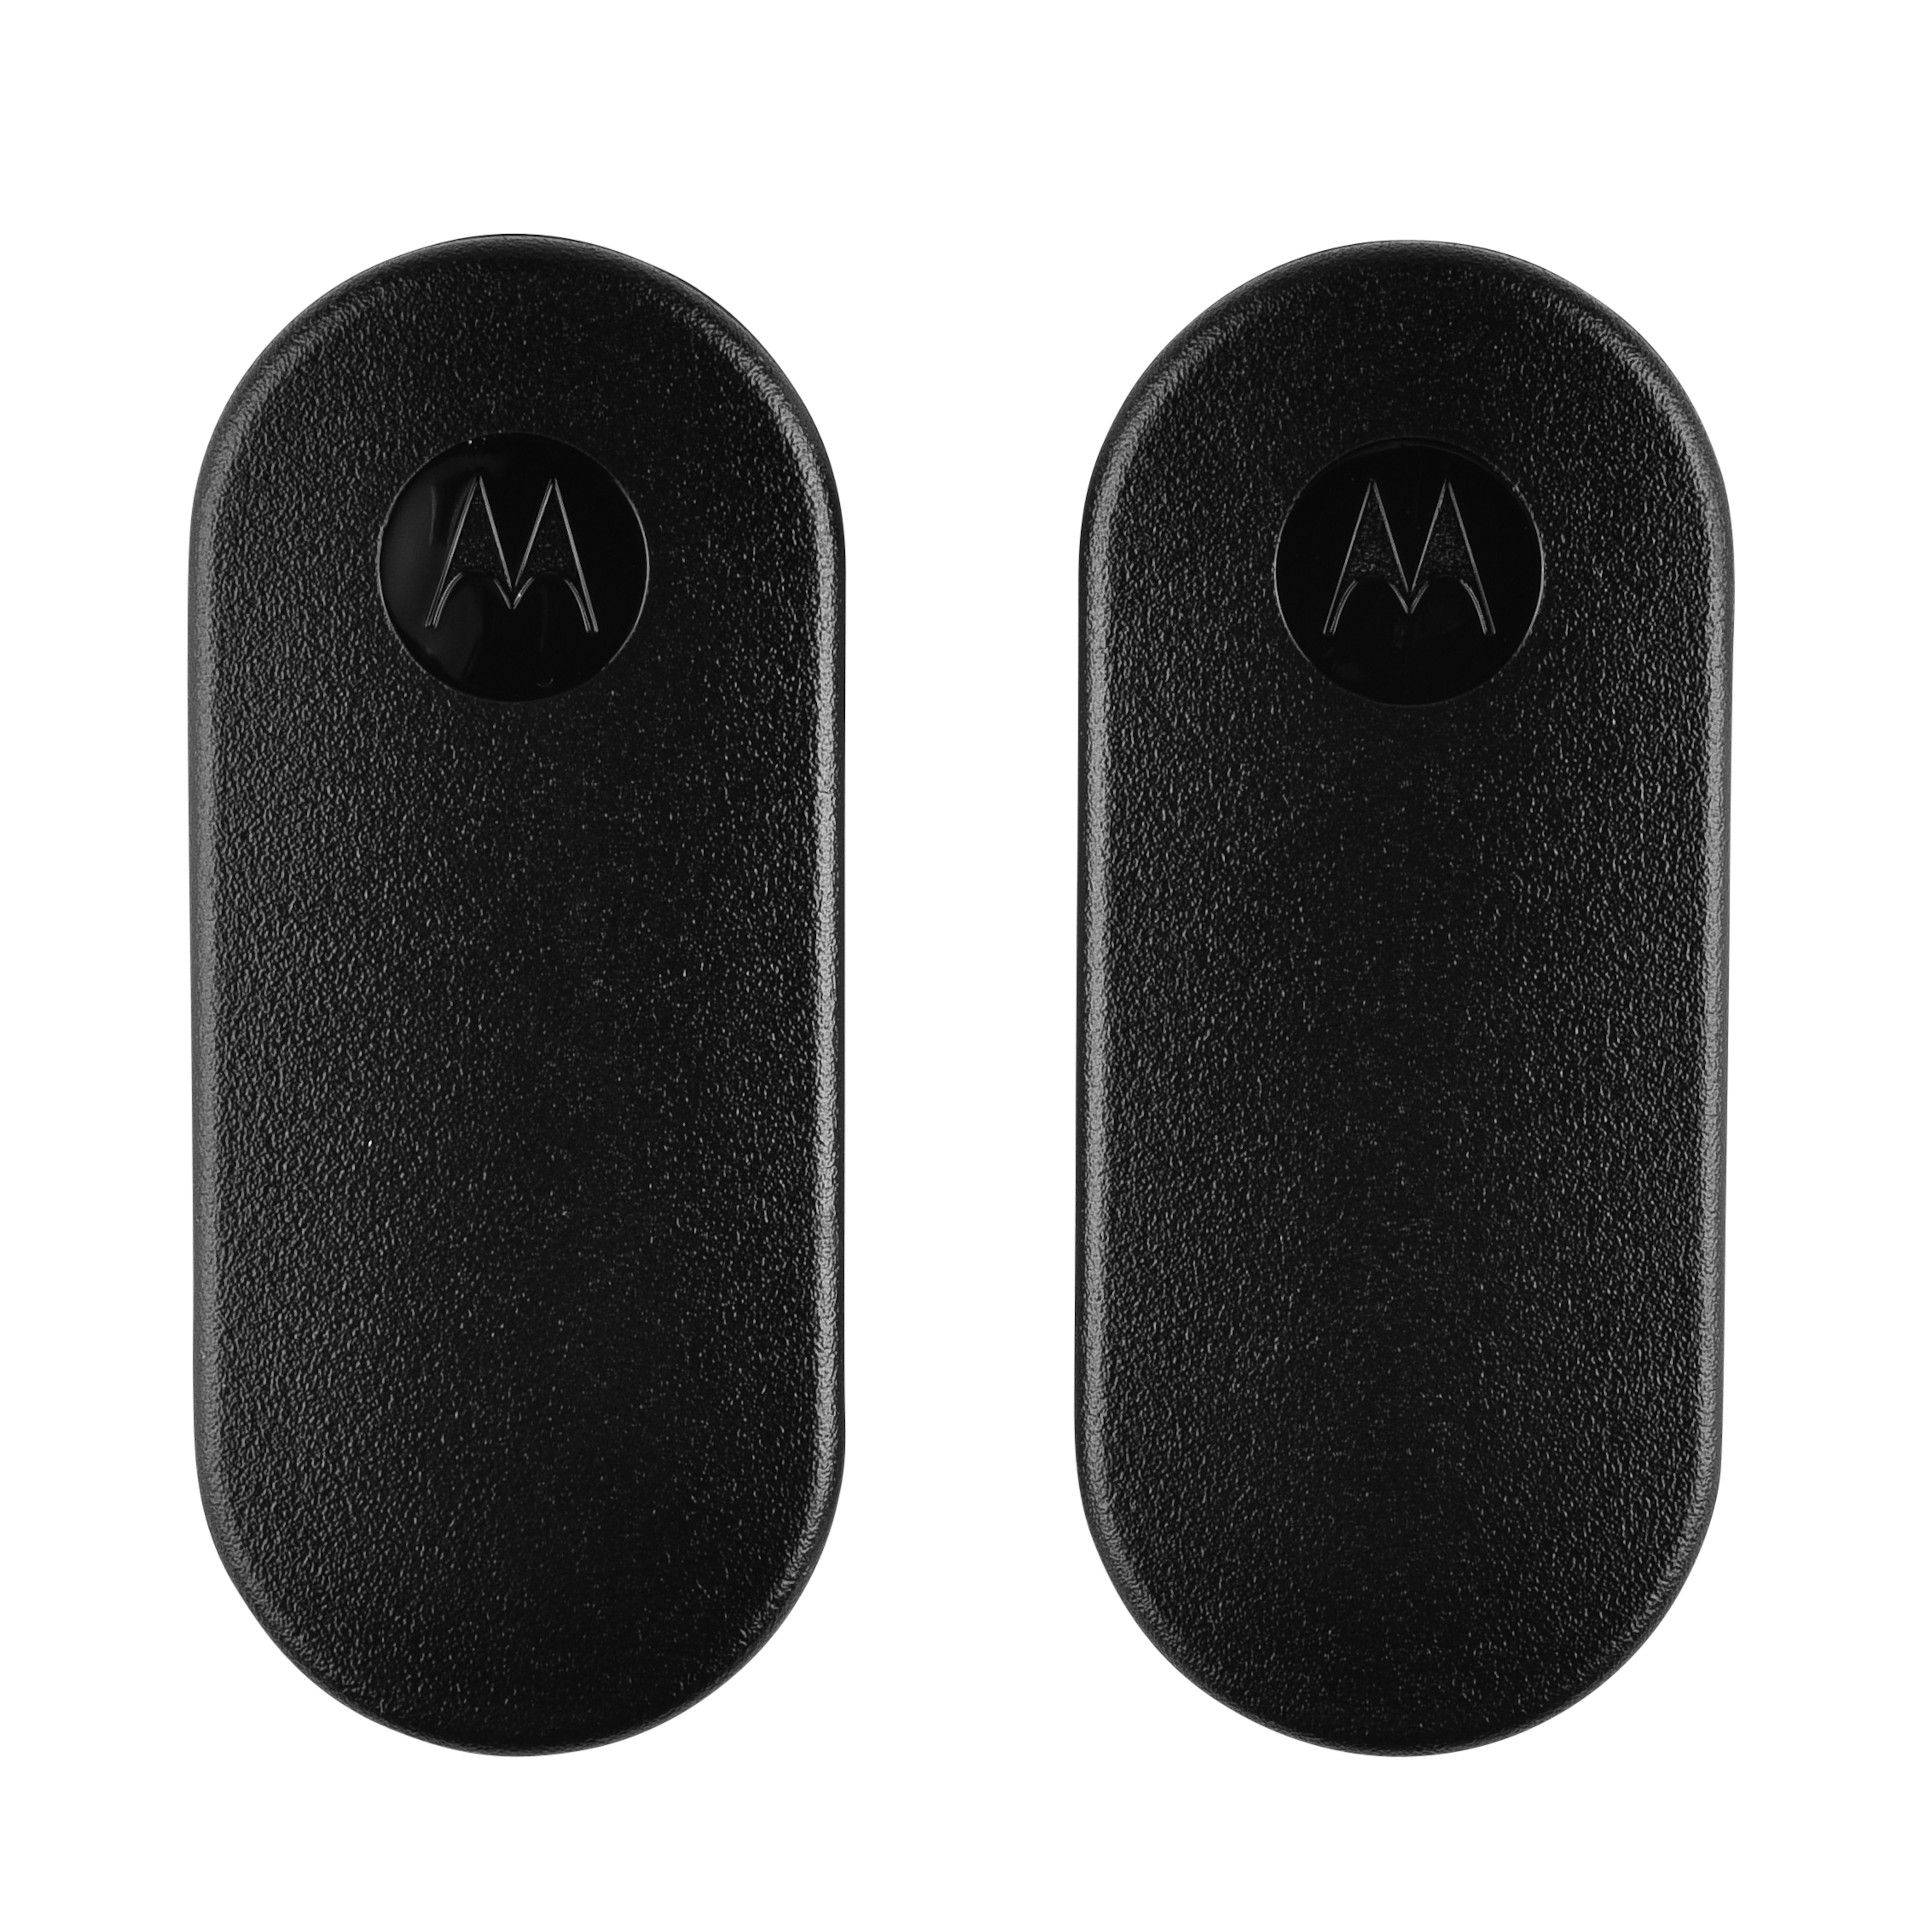 motorola PMLN7438 Belt Clip Twin Pack